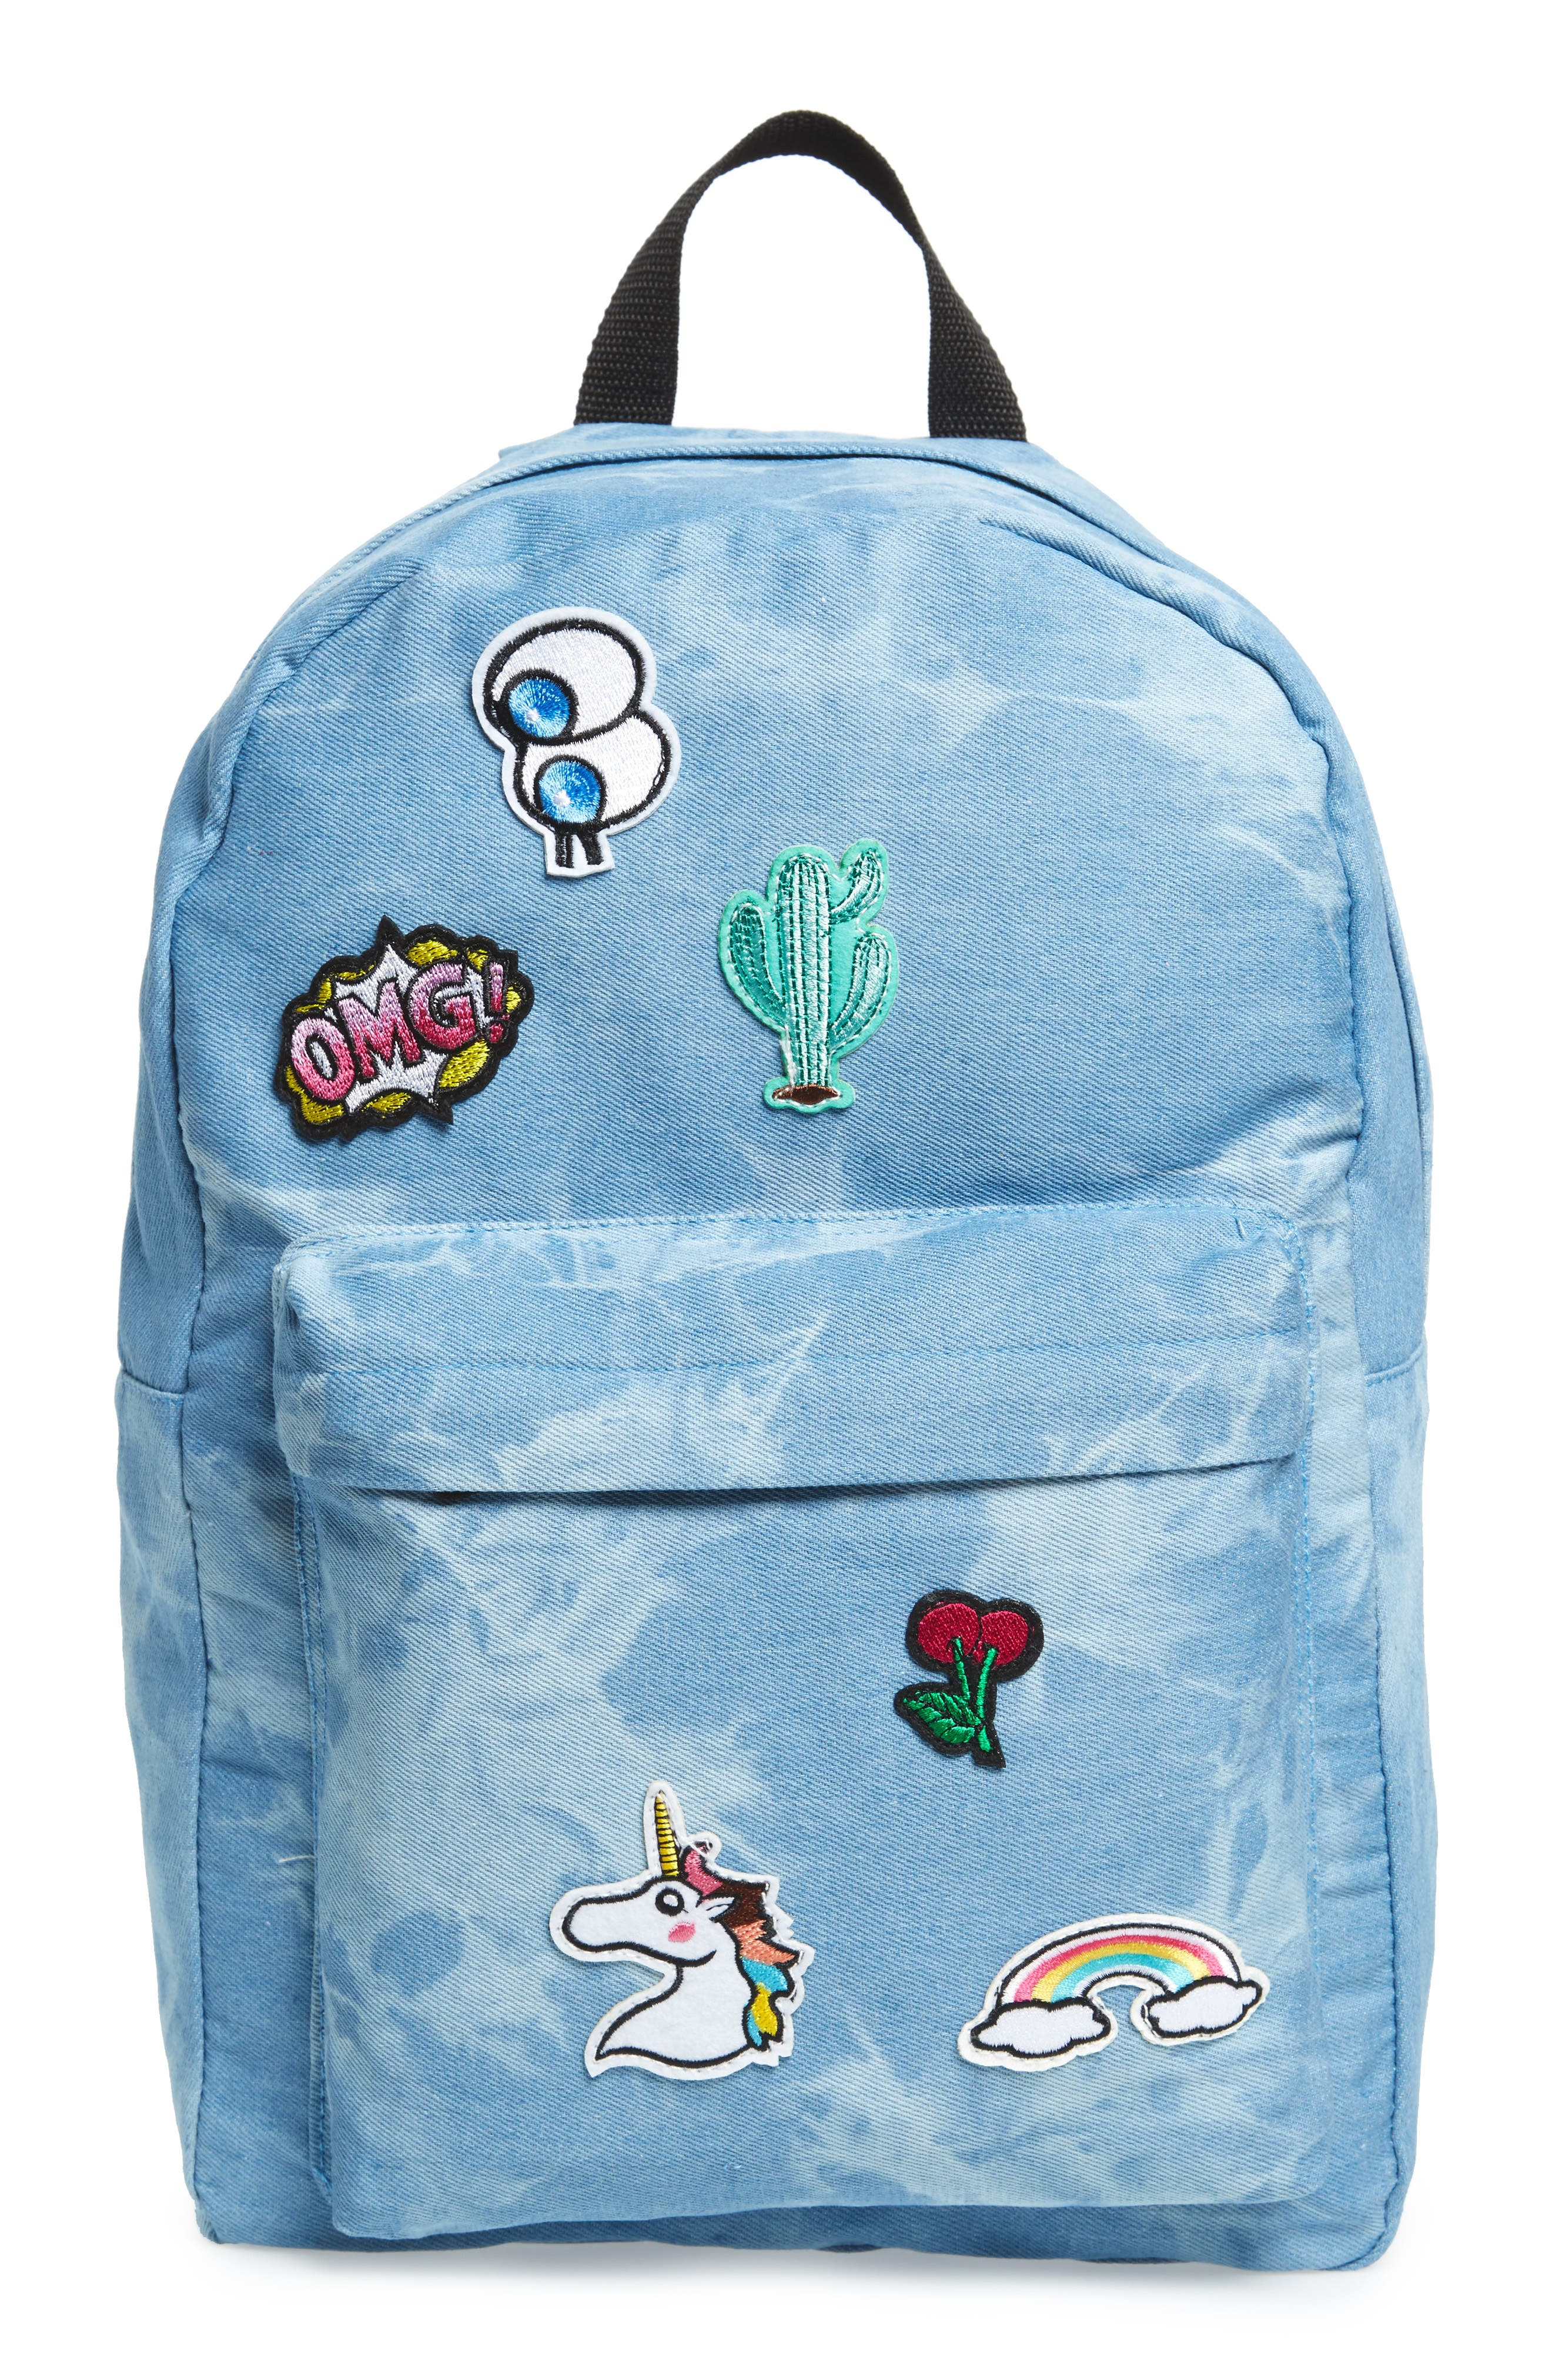 Accessory Collective Tie Dye Backpack,                             Main thumbnail 1, color,                             Blue